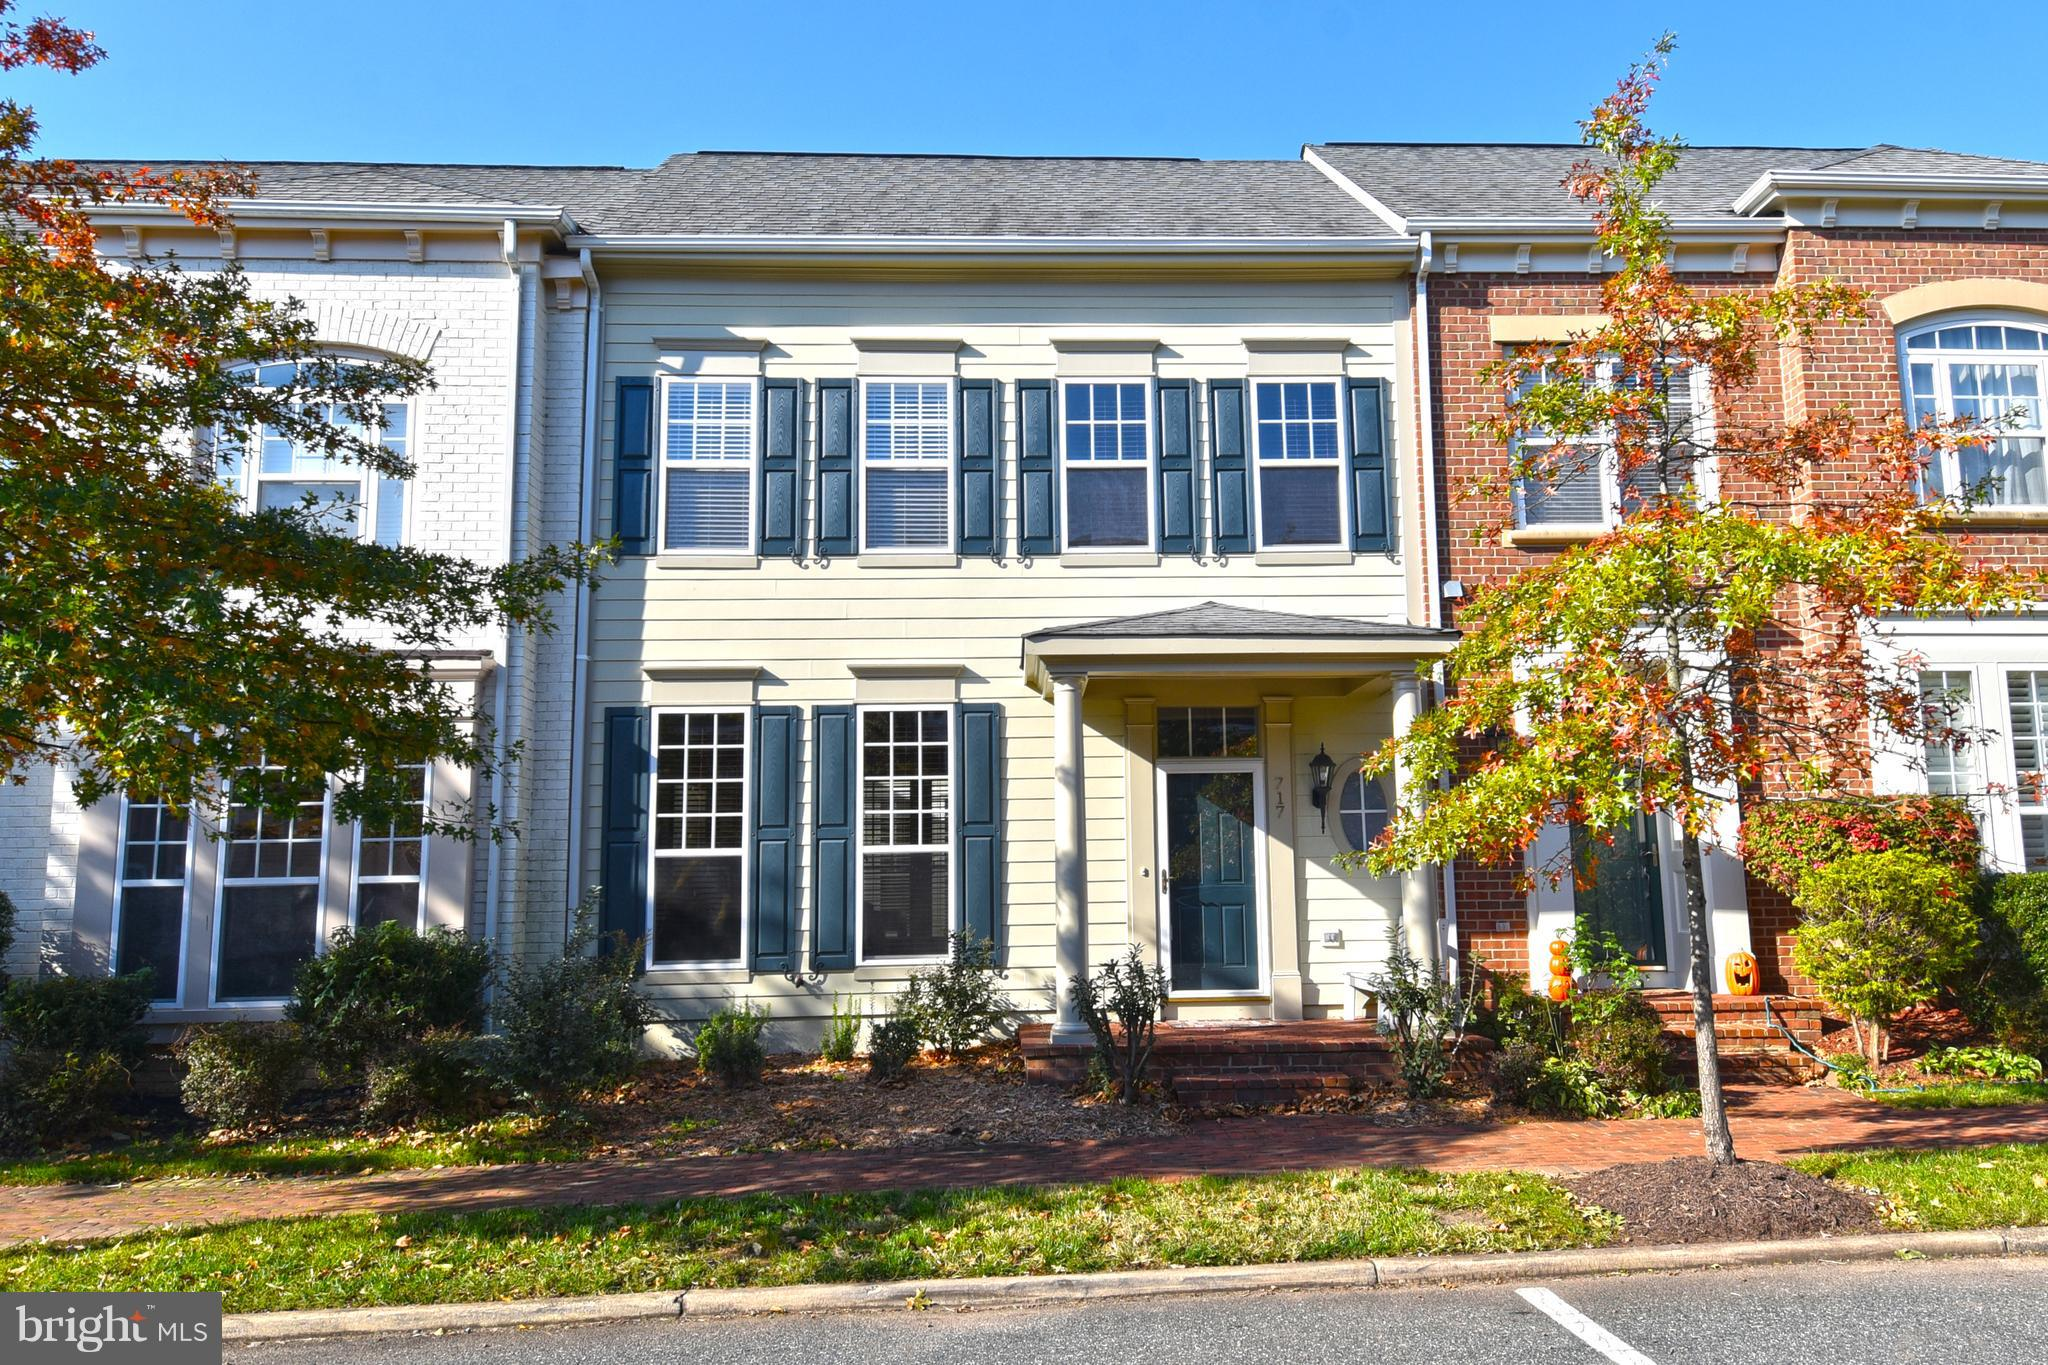 Spacious, Award Winning 3BR, 2.5BA TH in Belmont Bay. HUGE master BR with LARGE walk-in closet. Outdoor atrium off kitchen area. Granite countertops. 2 car garage. Fantastic community on the Occoquan. Swimming, tennis, marina, restaurant, VRE train within walking distance and mins from I95 a and commuter lots. Everything You Need for a Resort-Style Community.